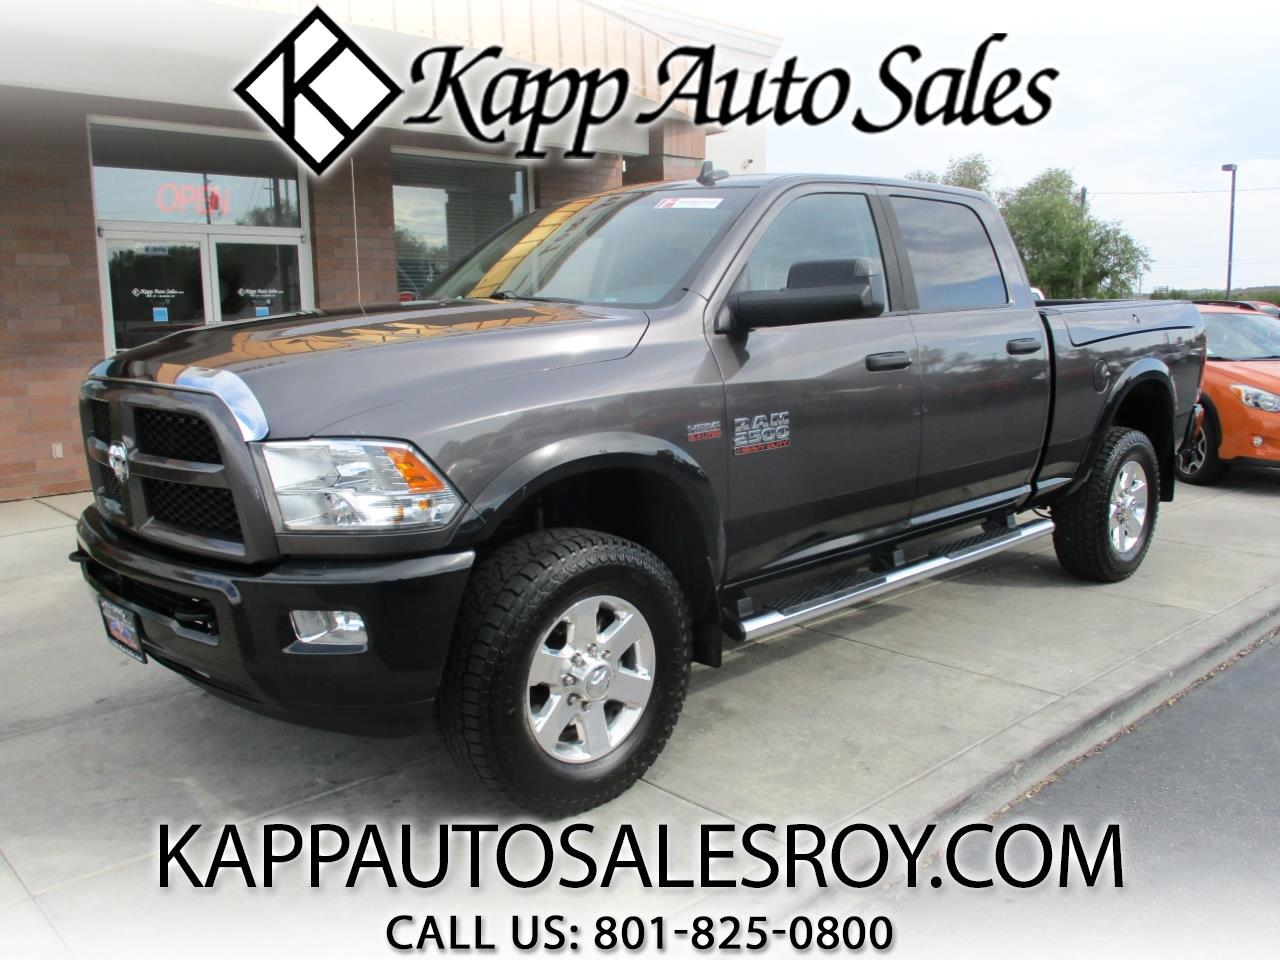 "2015 RAM 2500 Outdoorsman 4x4 Crew Cab 6'4"" Box"